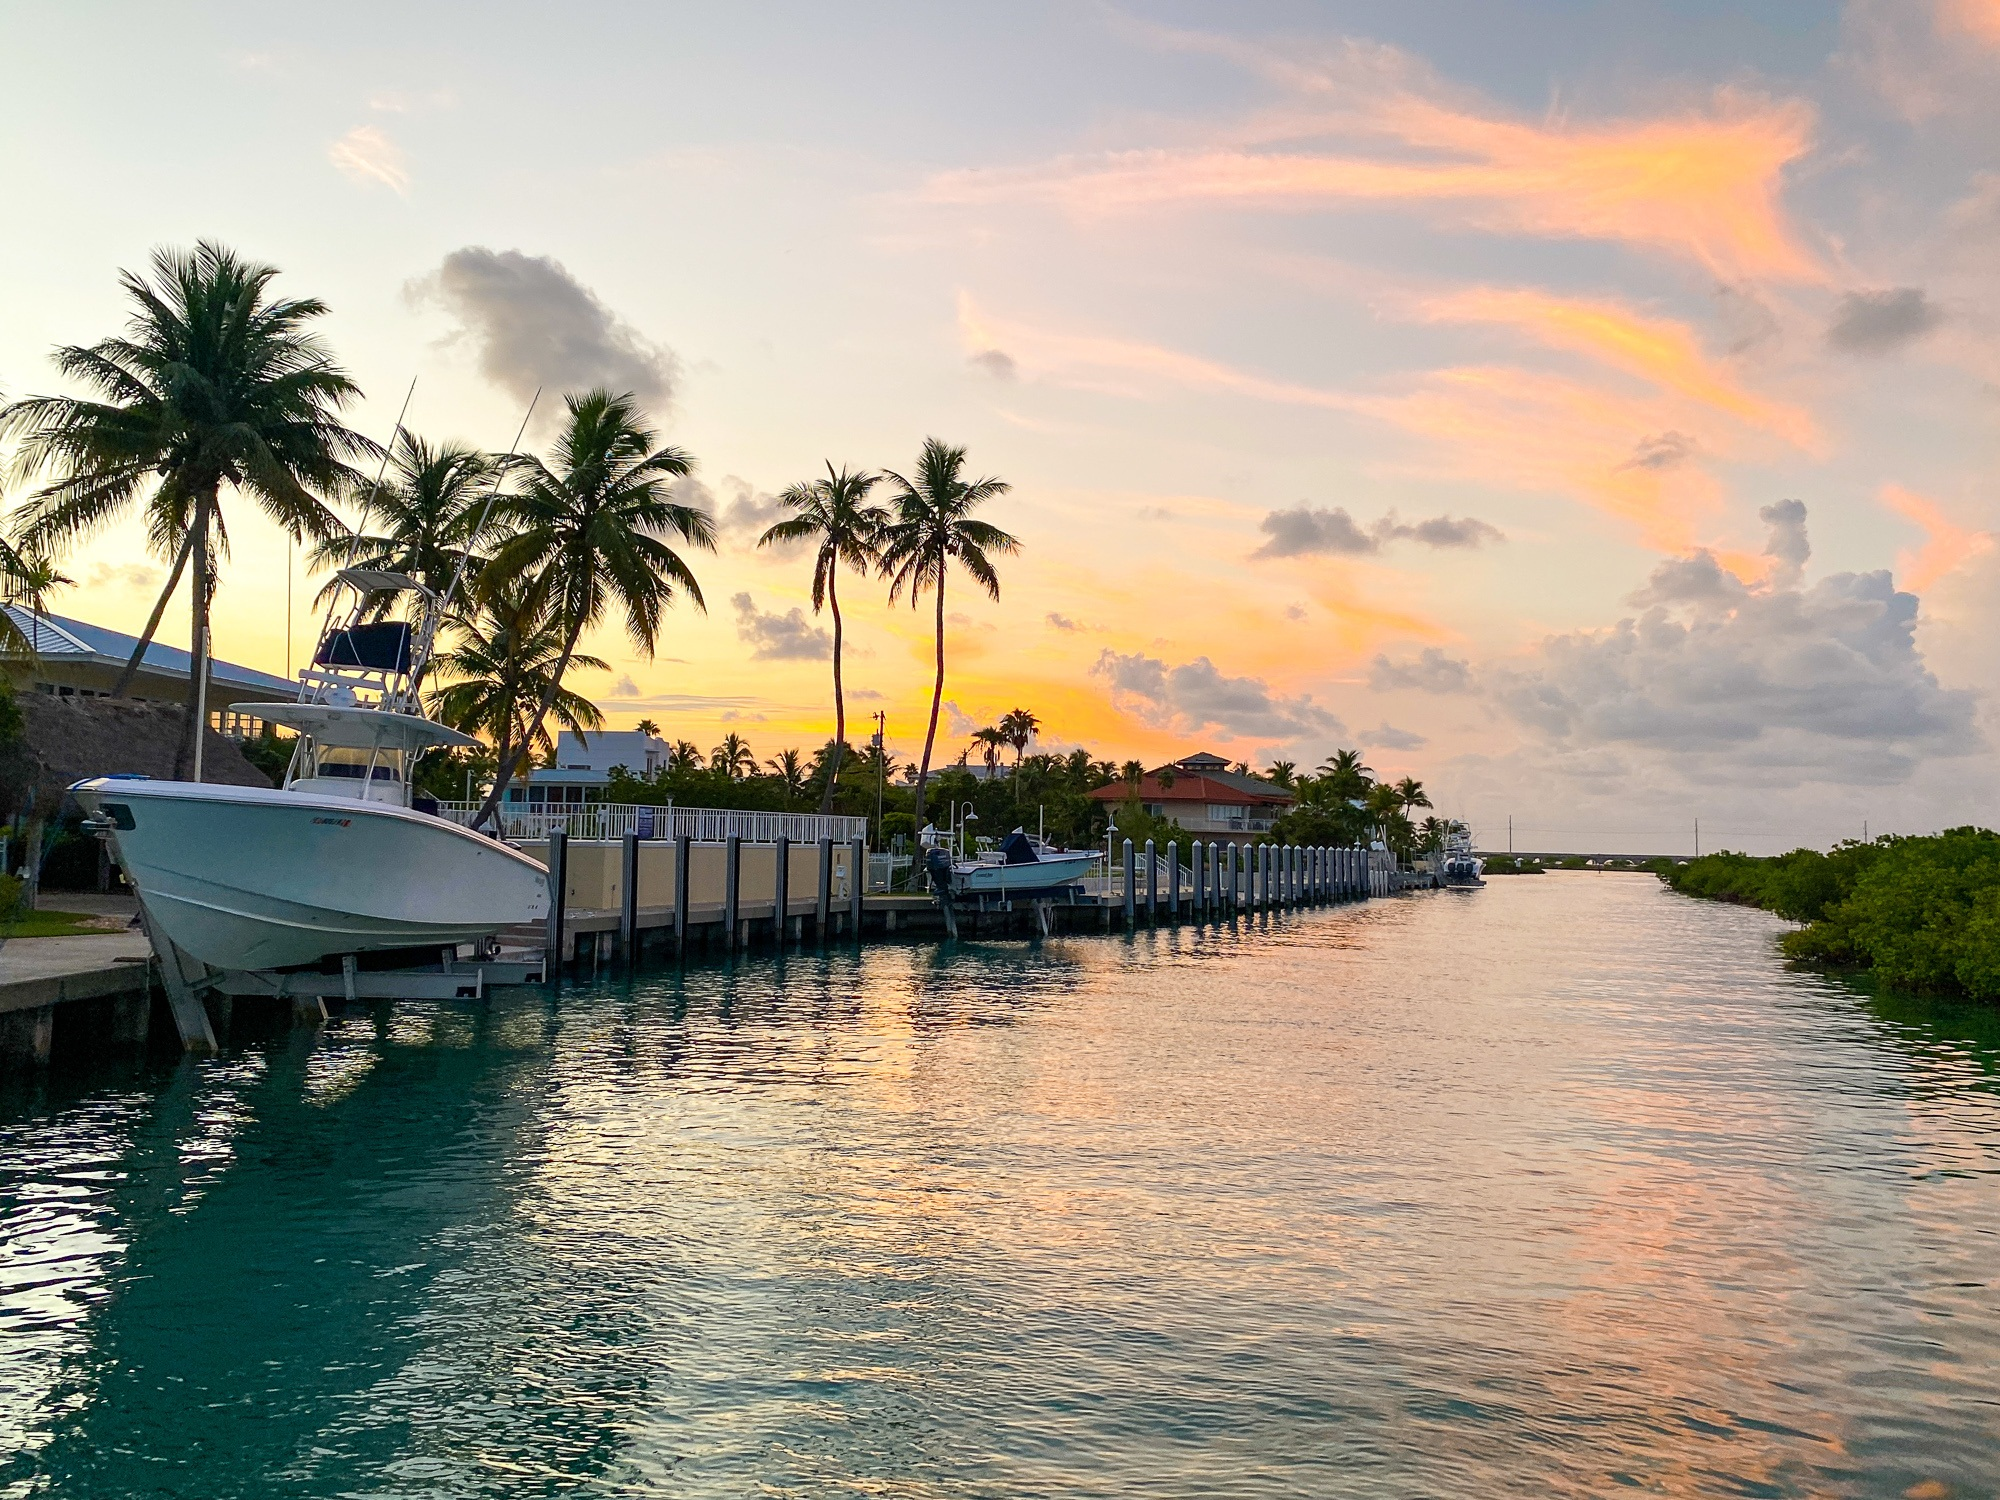 Sunset Cruise with Solé Watersports in Duck Key, Florida